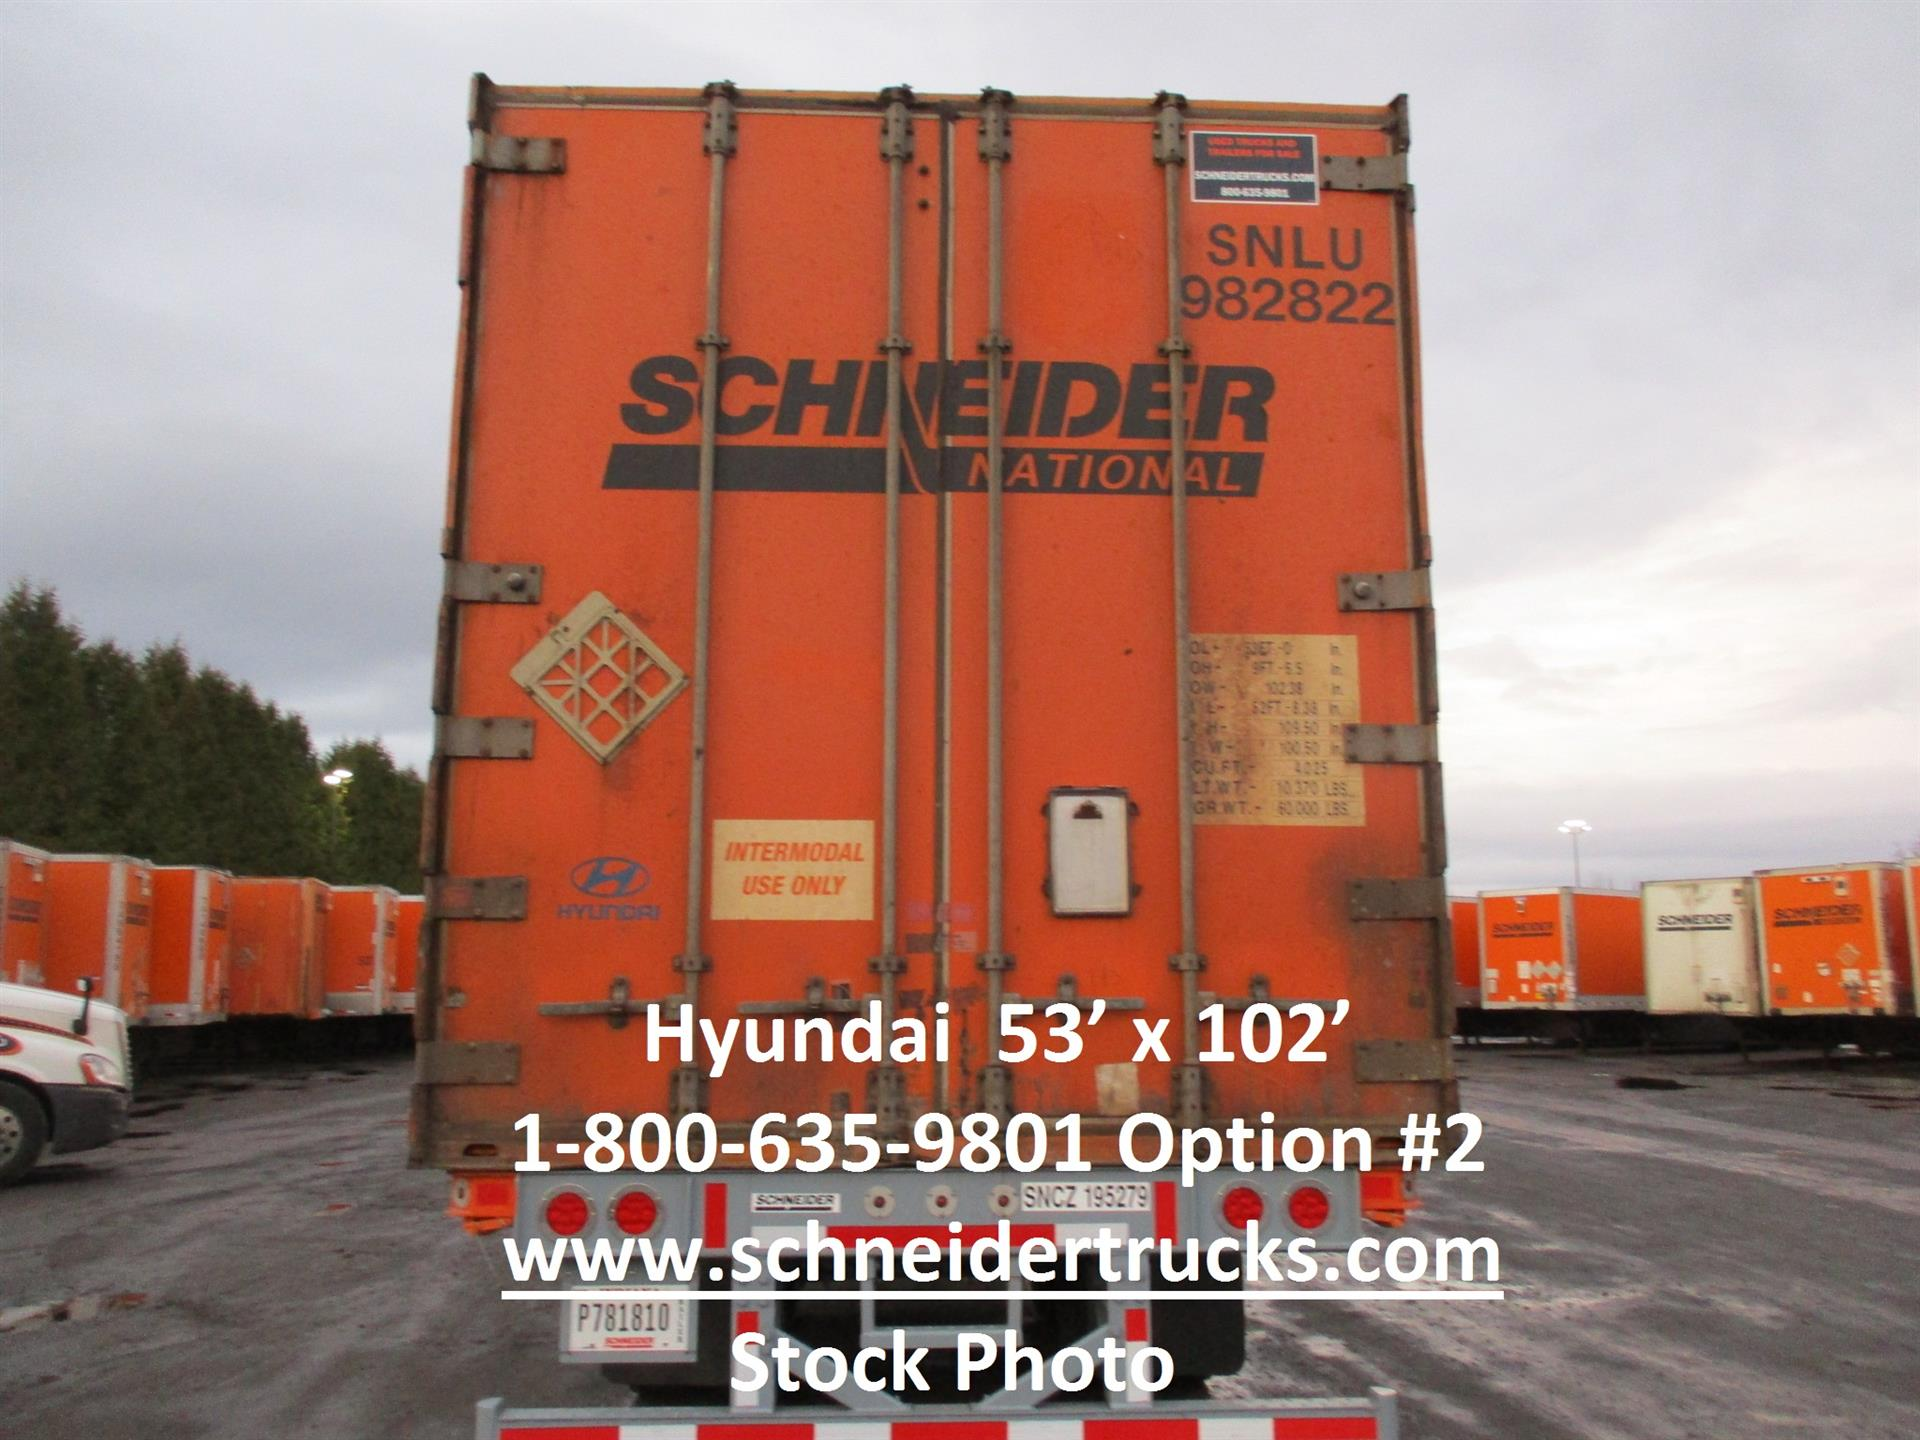 2006 Hyundai Container for sale-59289362